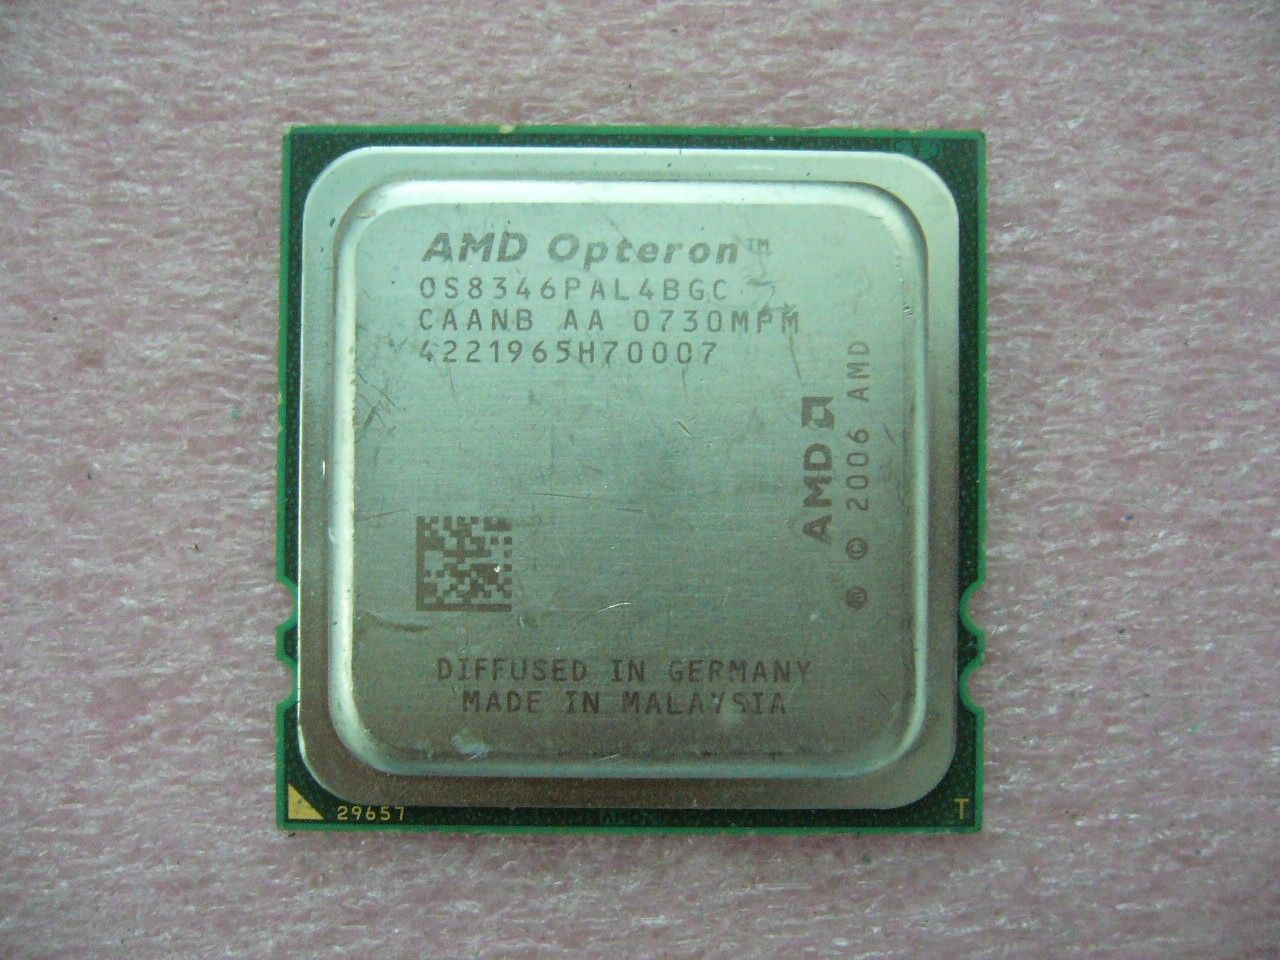 QTY 1x AMD CPU OS8346PAL4BGC Opteron 8346 HE Low-Power 1.8 GHz Quad-Core F 1207